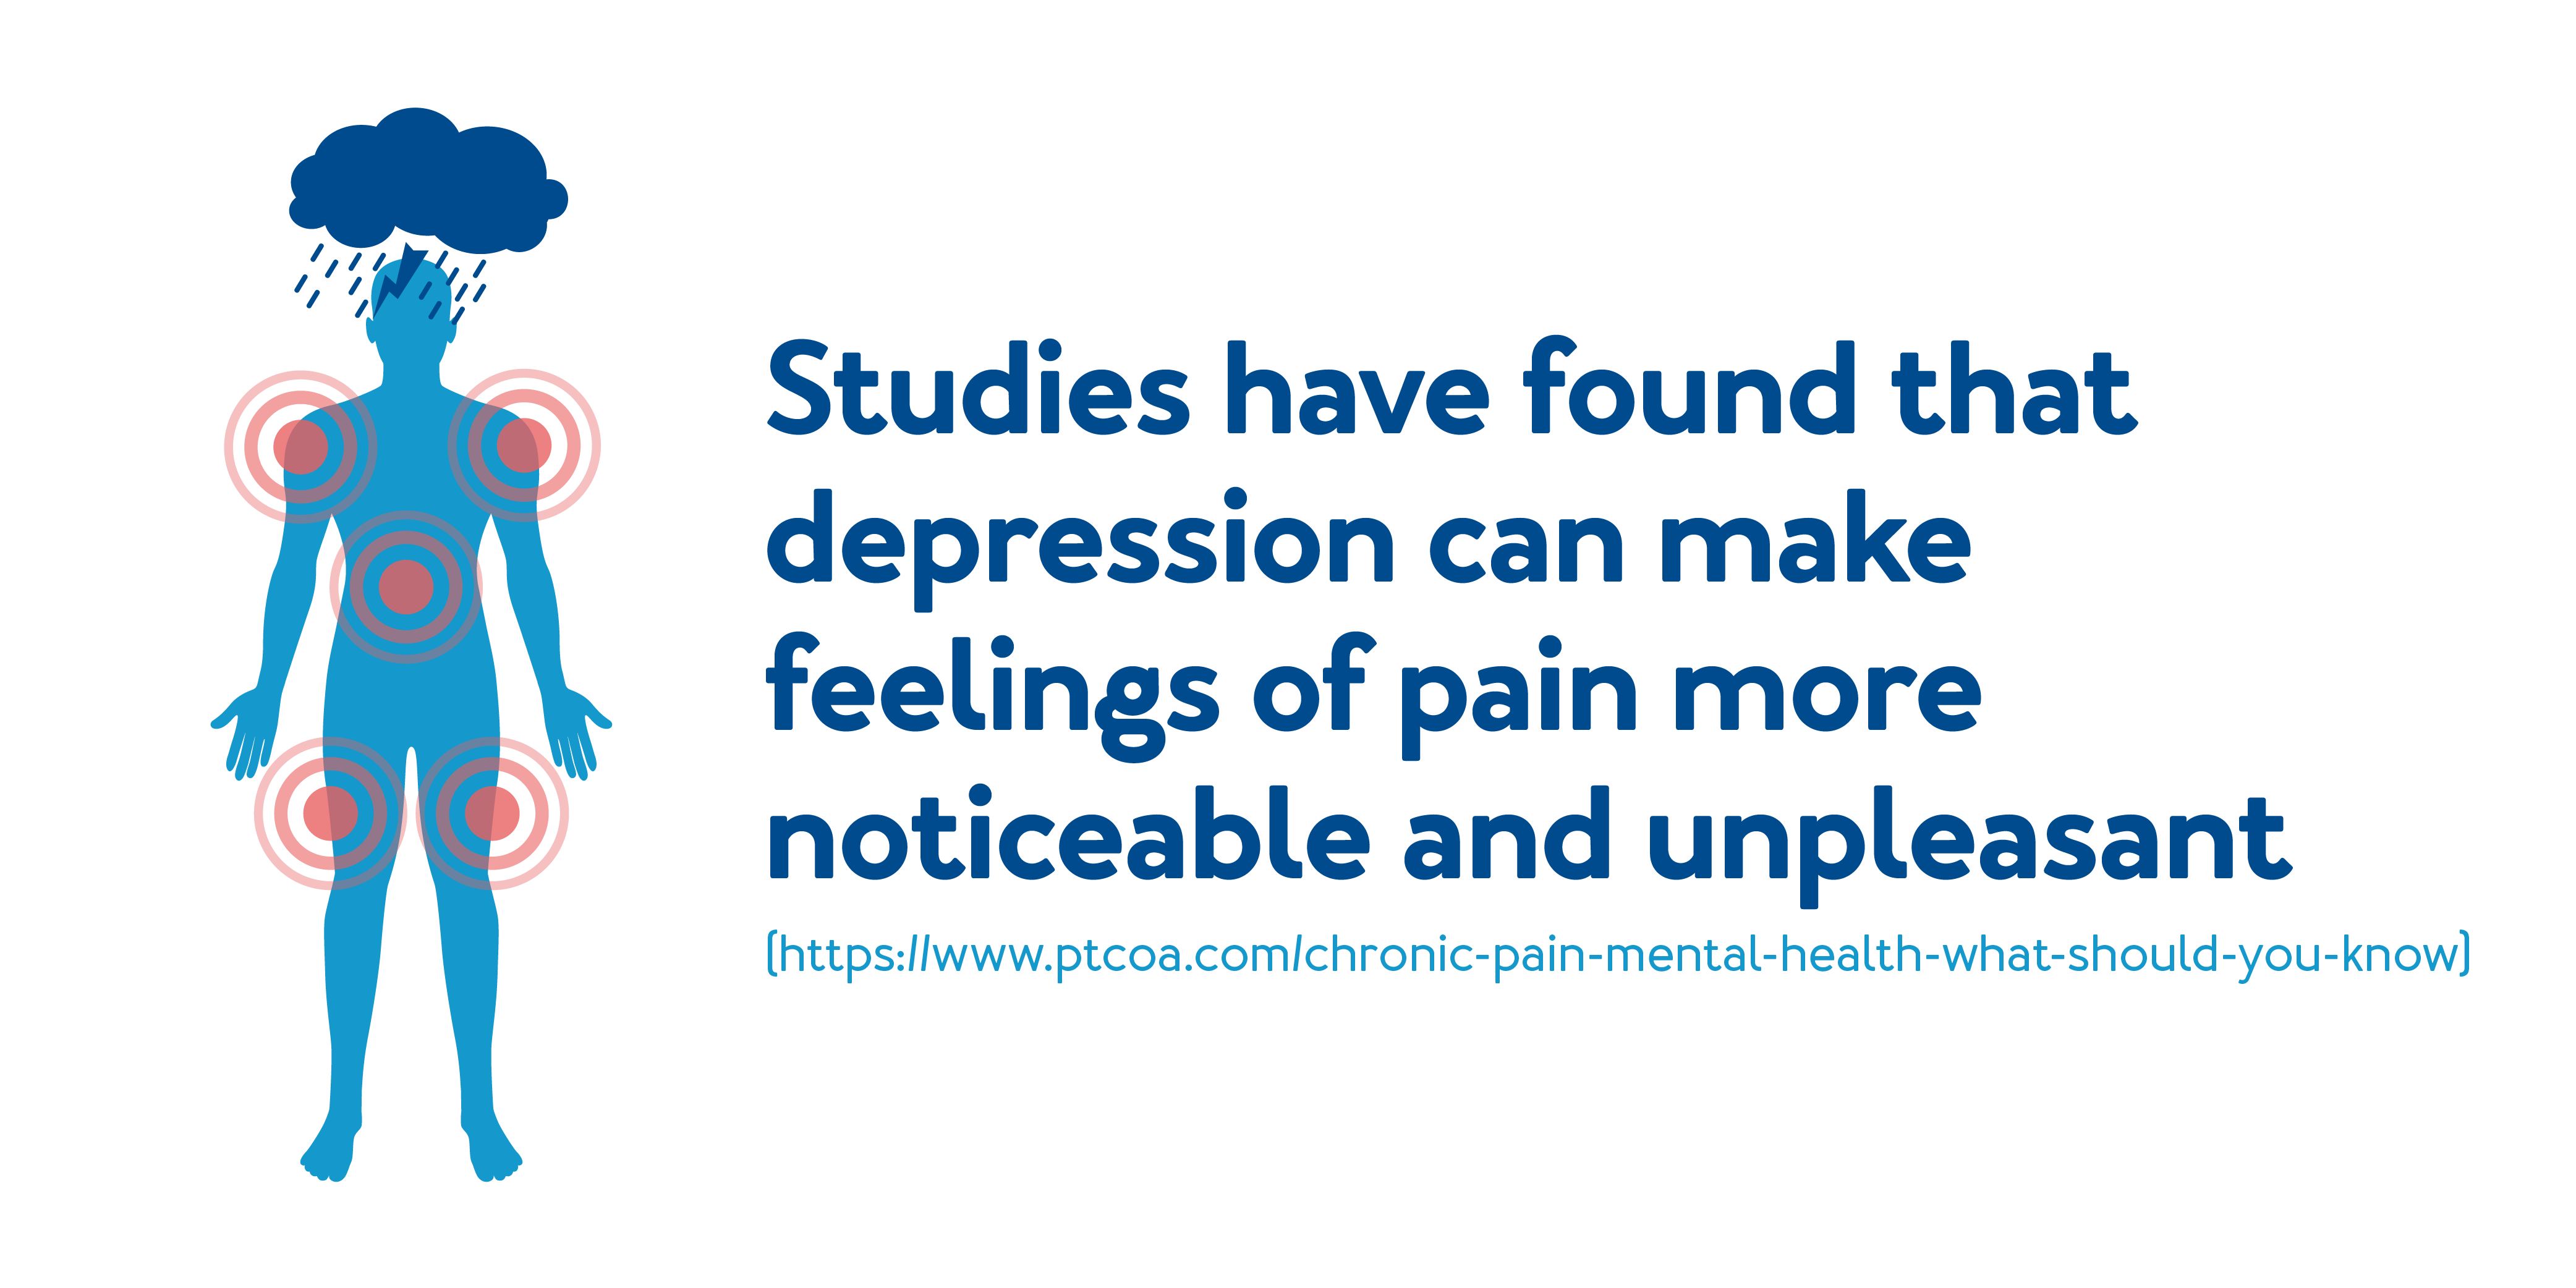 Studies have found that depression can make feelings of pain more noticeable and unpleasant.